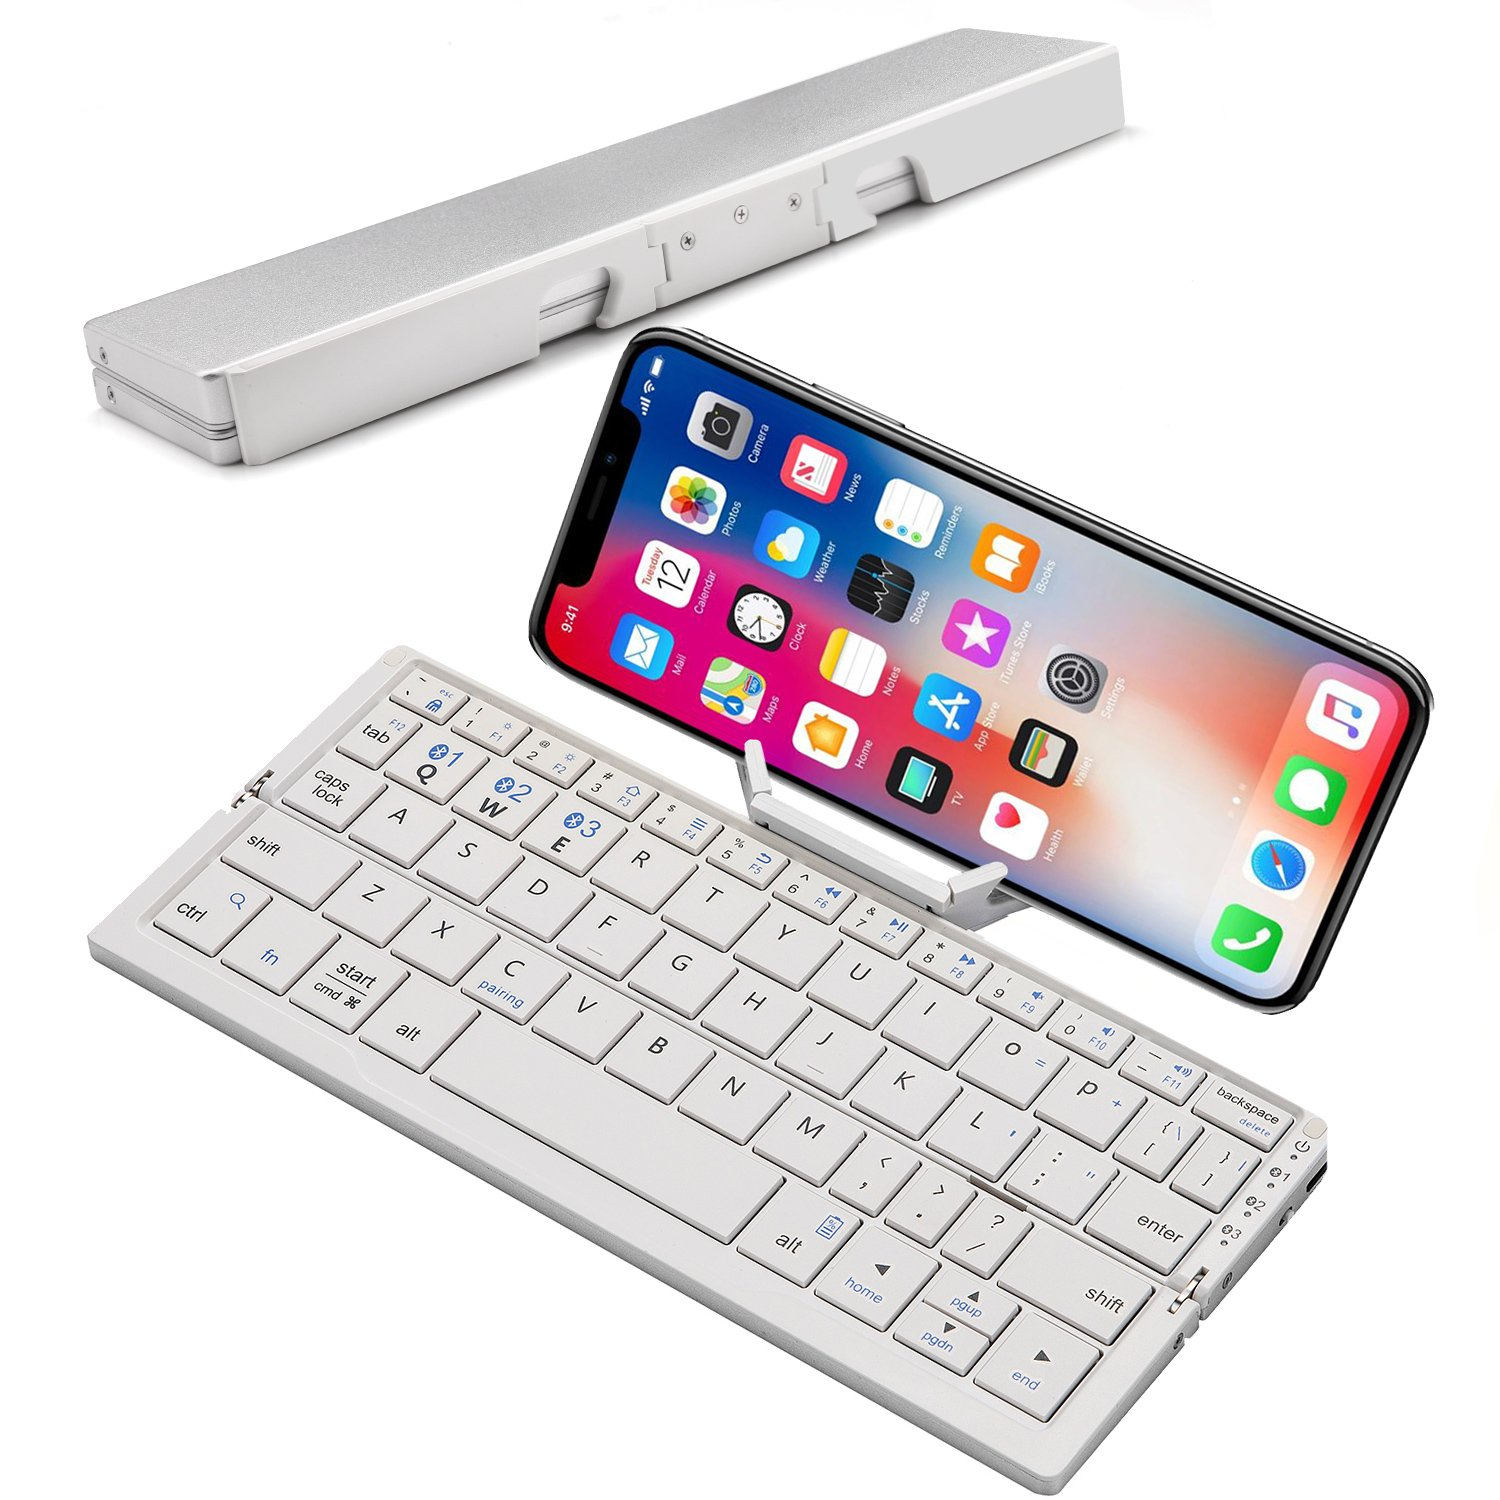 Mini Folding Bluetooth Keyboard, Raydem Portable Wireless Keyboard with Stand Holder, Ultra Thin Pocket-sized Aluminum Alloy Base with Carry Pouch for iPad, iPhone, Tablets, iOS, Android, Windows